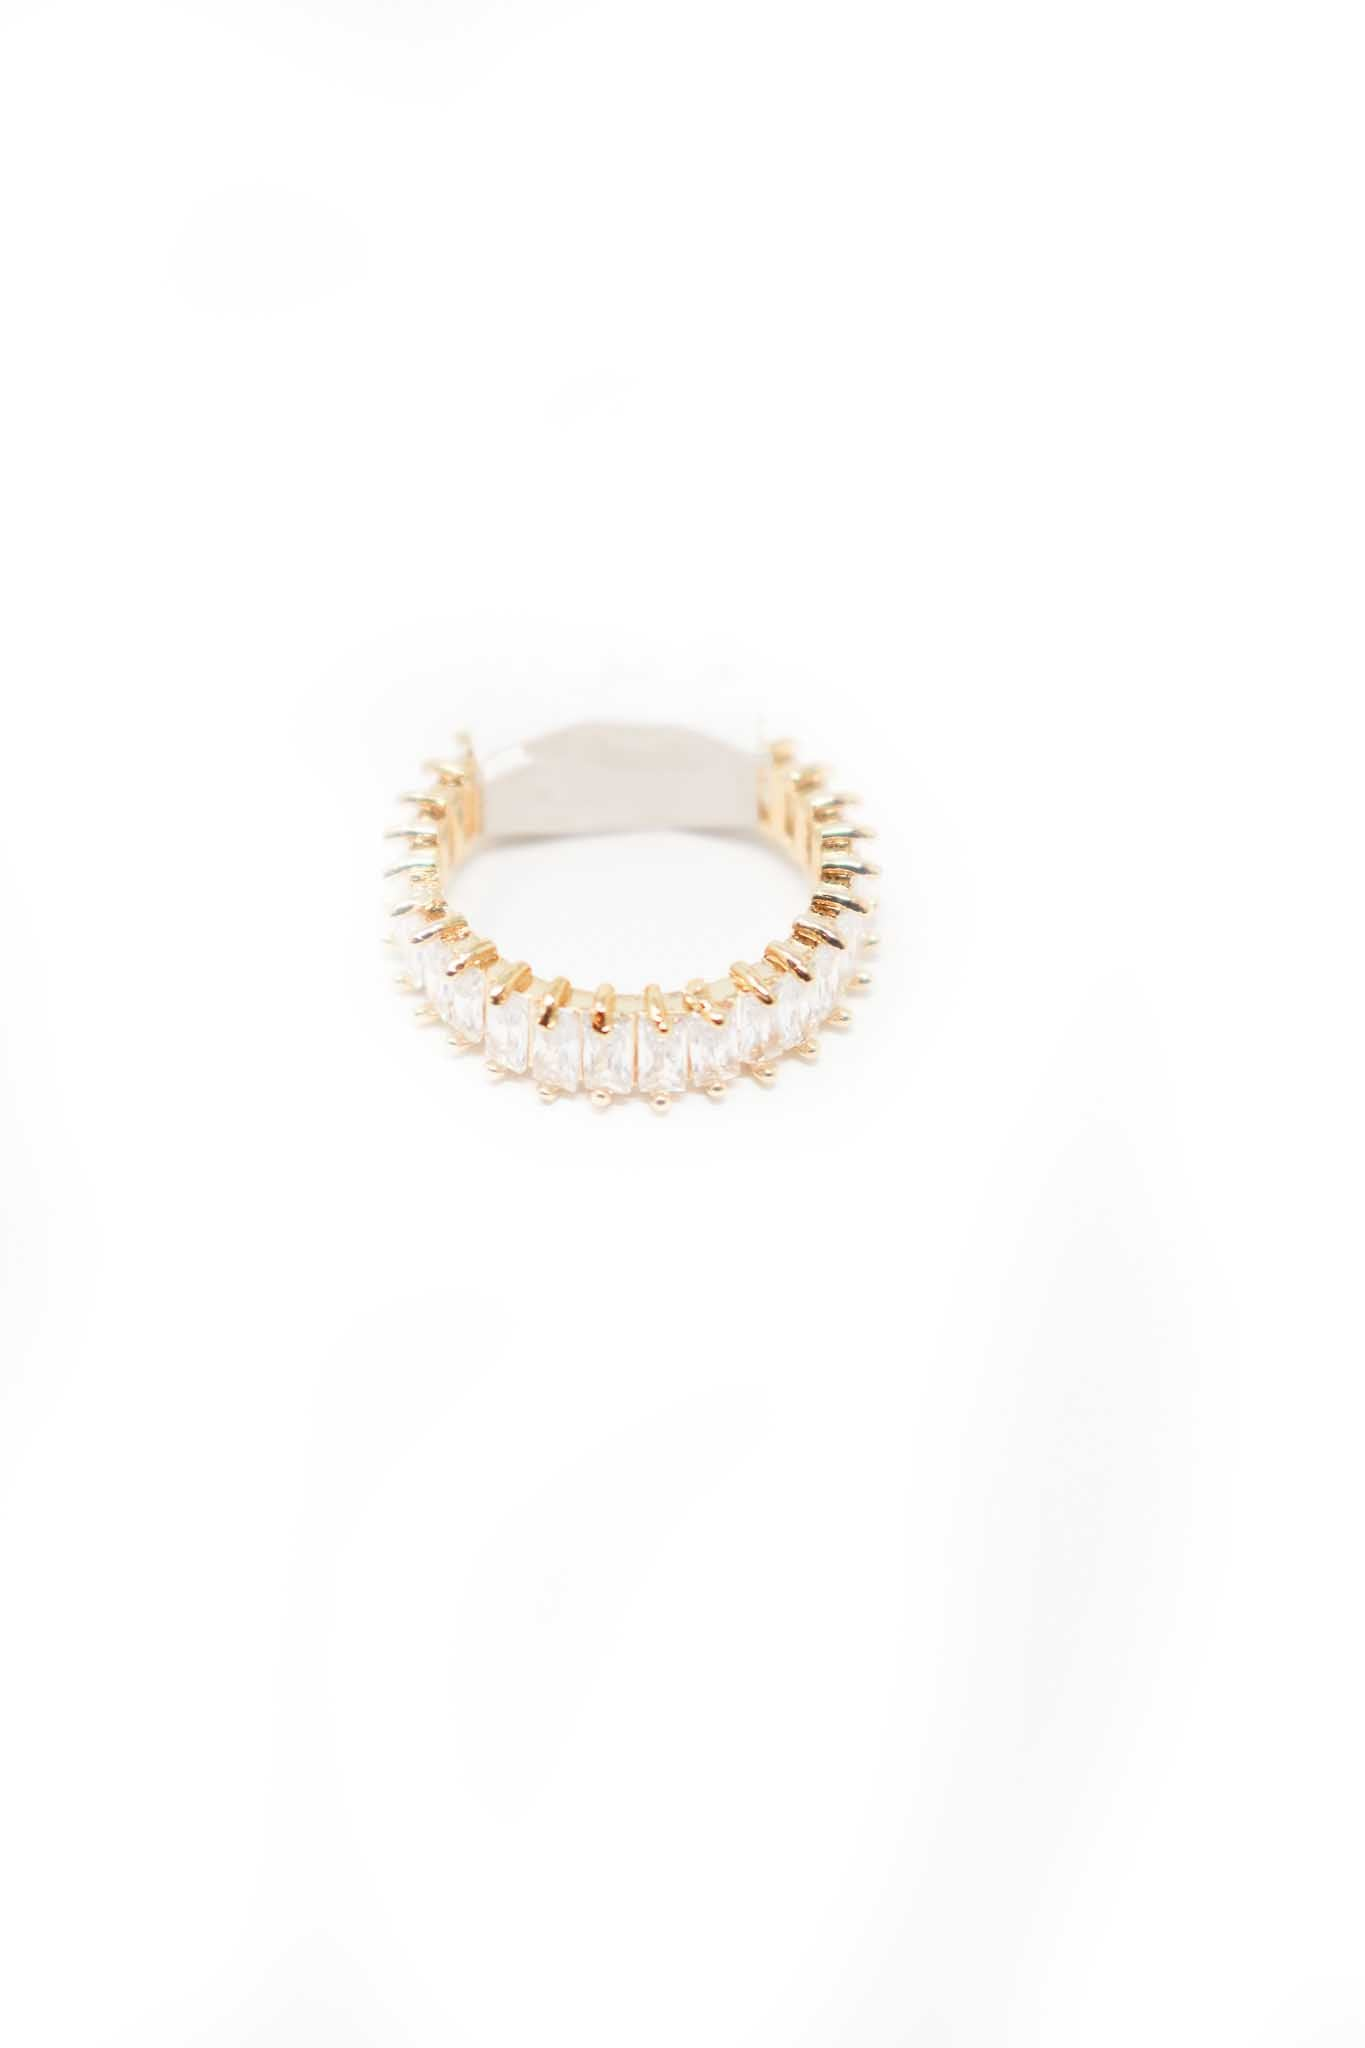 Crystal Gold Ring - Gabrielle's Biloxi